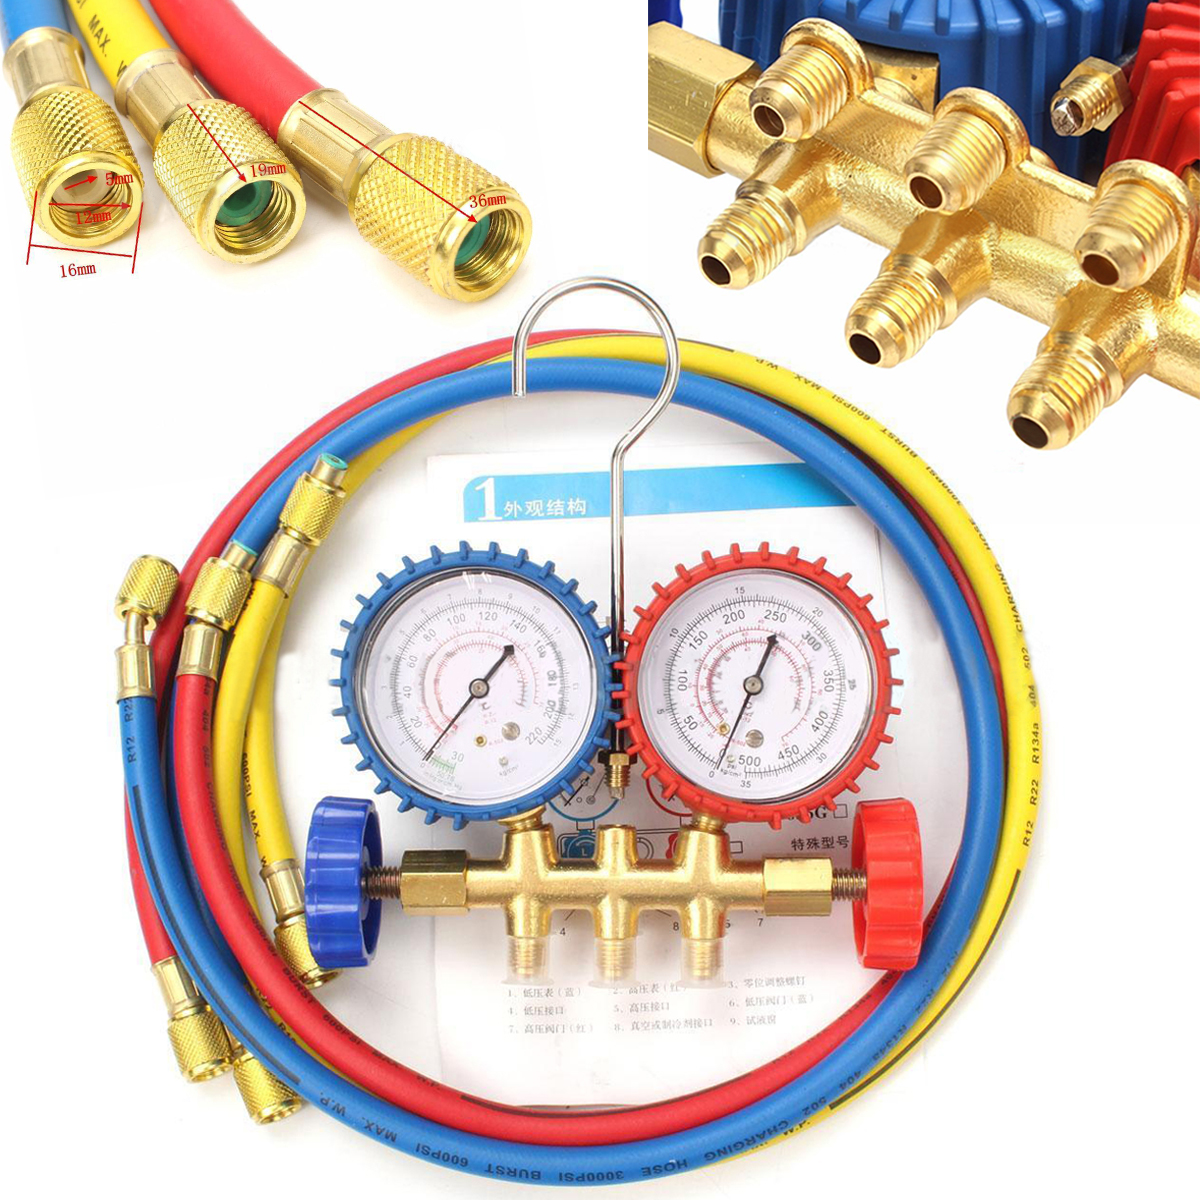 New Manifold Gauge Set Charging For R134A R12 R22 R404z Air Condition Refrigeration high quality automotive refrigeration air conditioning manifold gauge for r134a